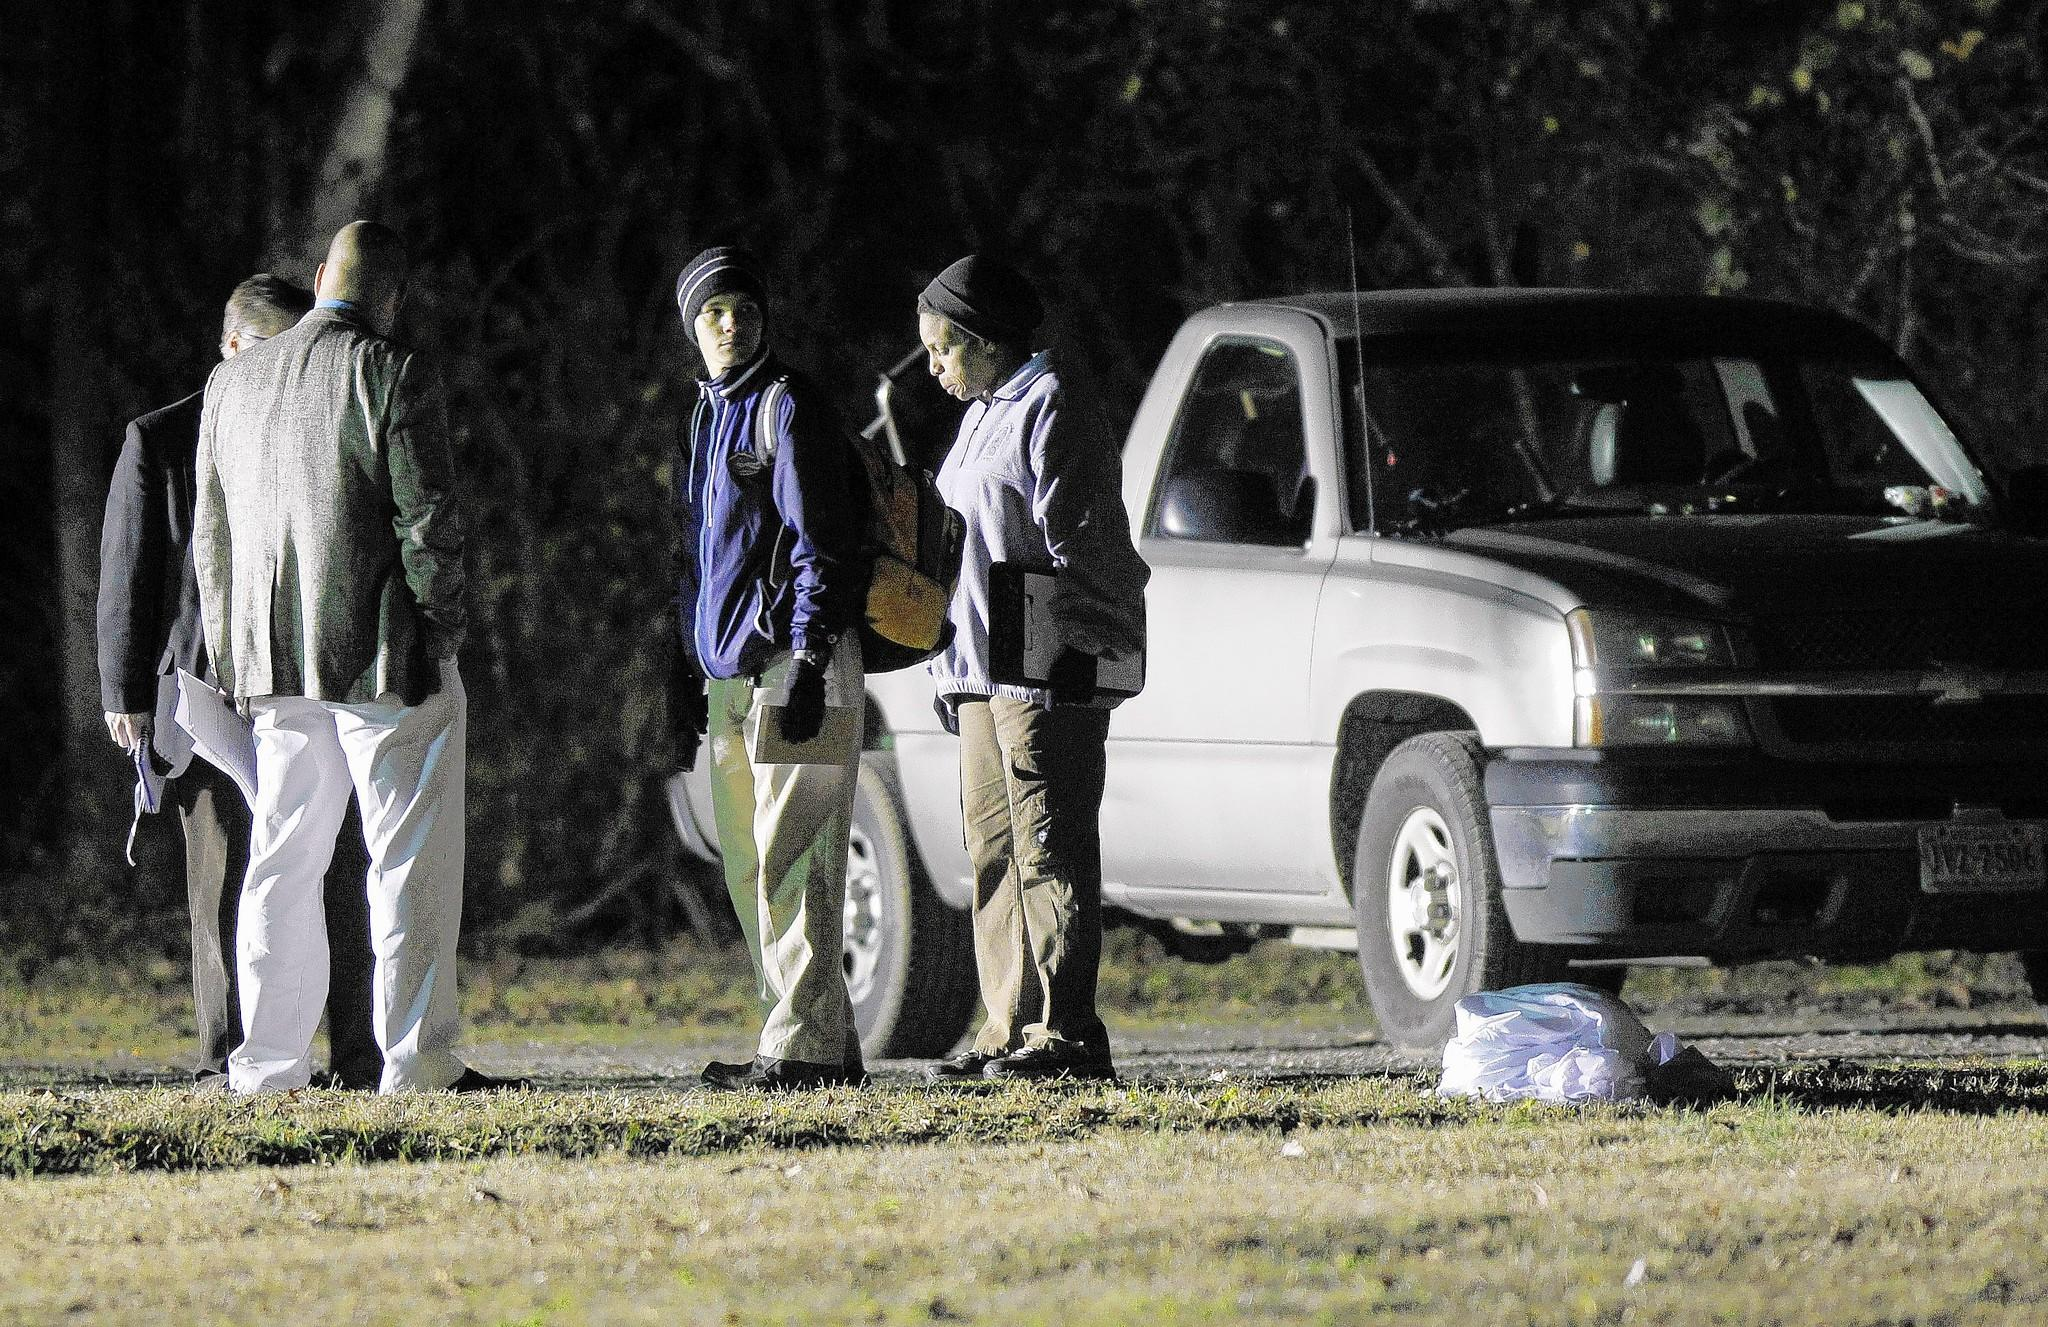 Officials investigate the scene of a shooting that occurred at Woodland Skate Park in Hampton just before 4 p.m. on Dec. 31. A 16-year-old has been charged with capital murder in the slayings.